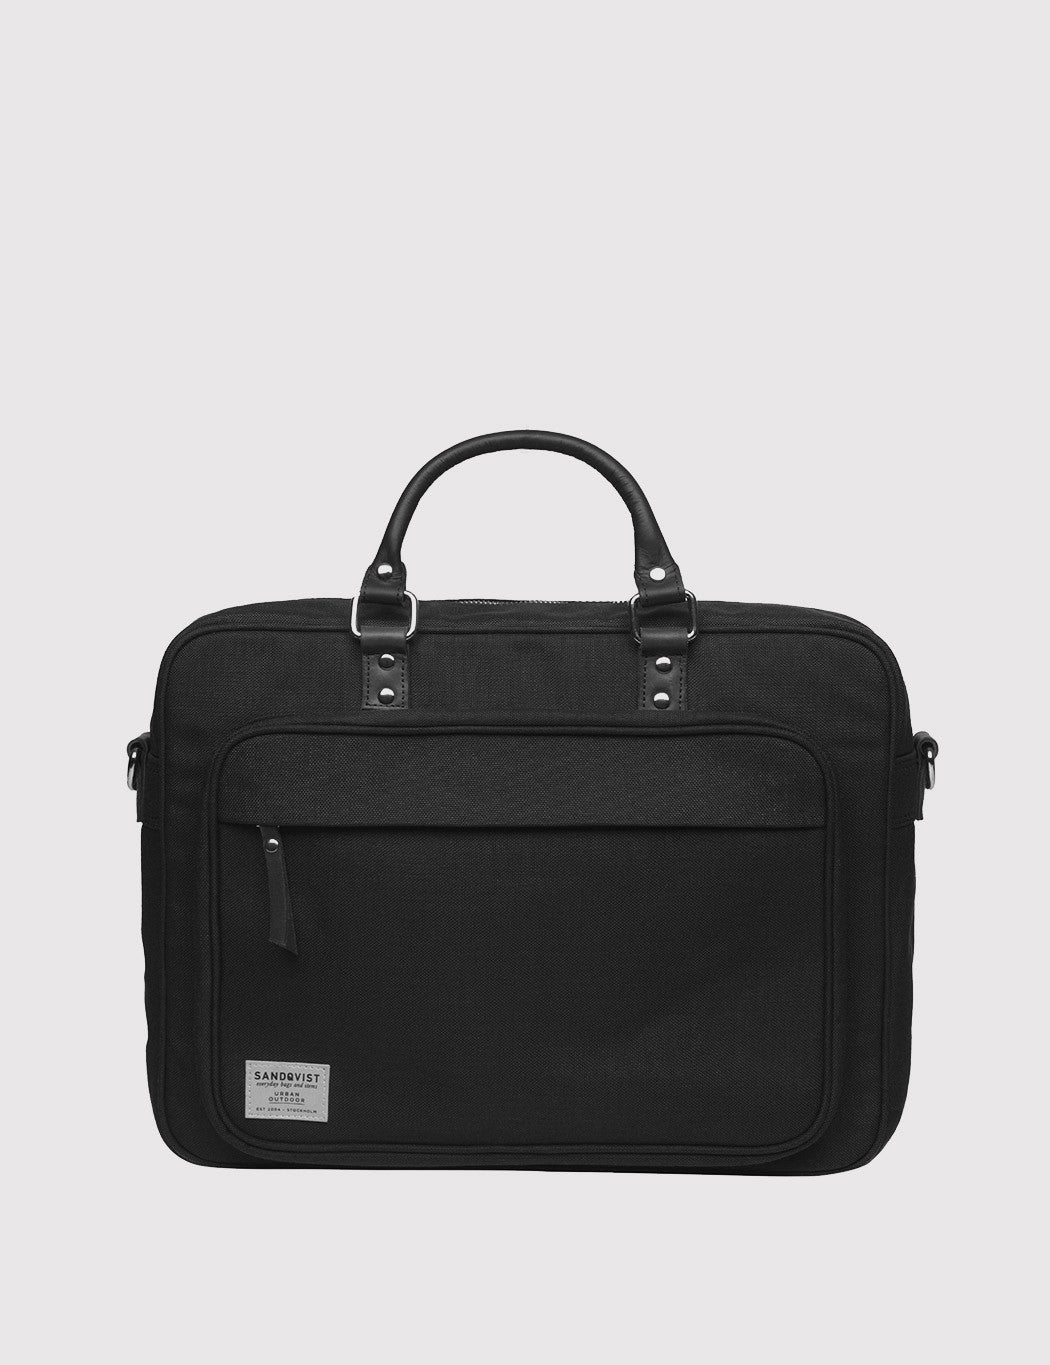 Sandqvist Pontus Laptop Bag - Black